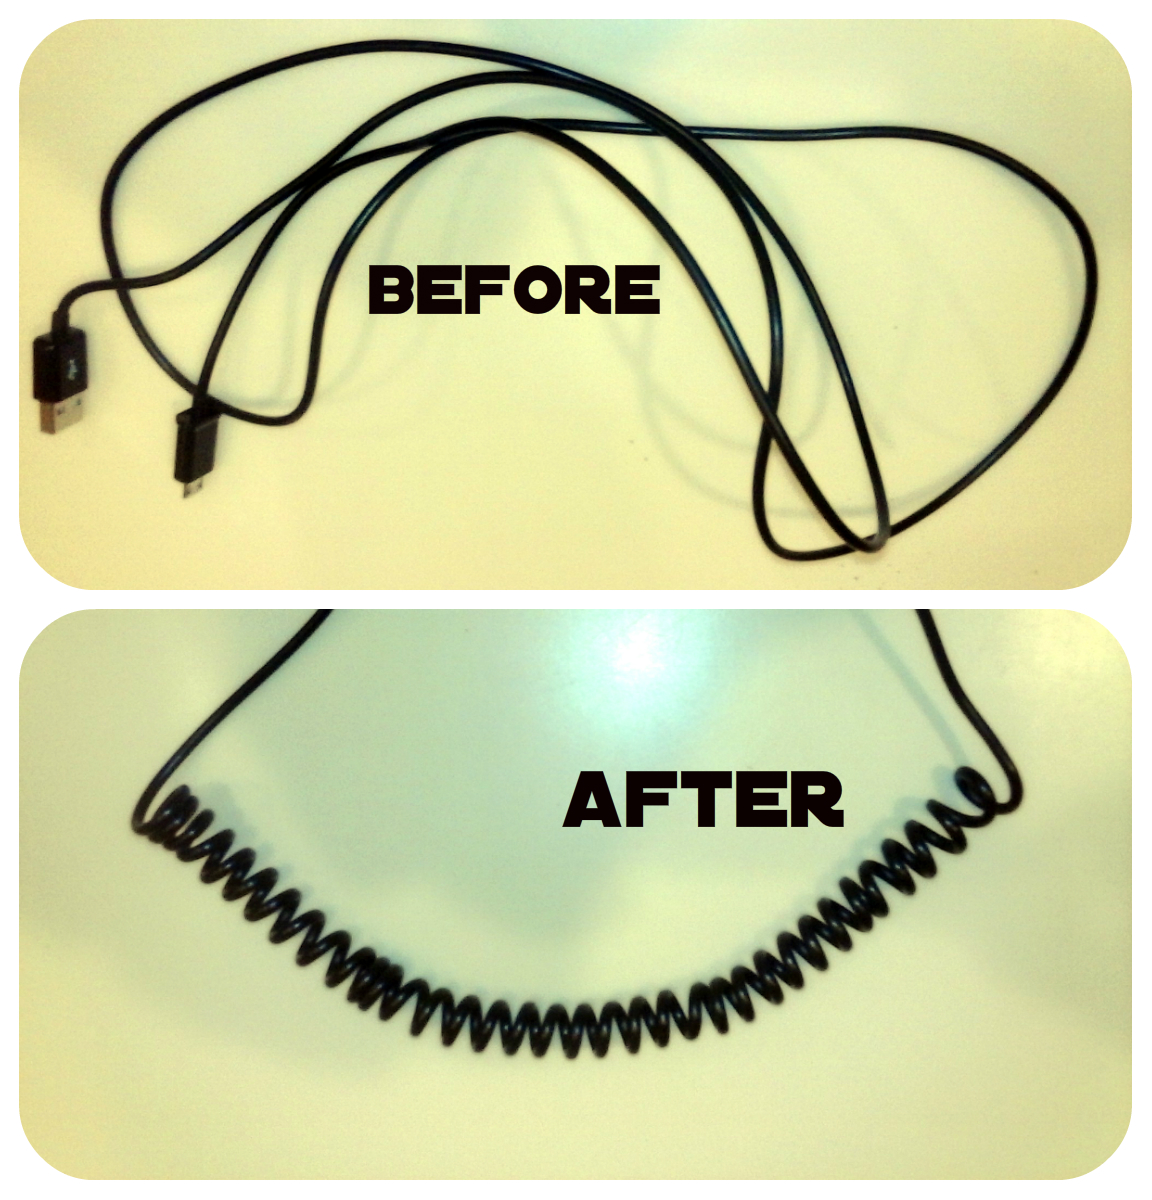 Coiling a USB power cord